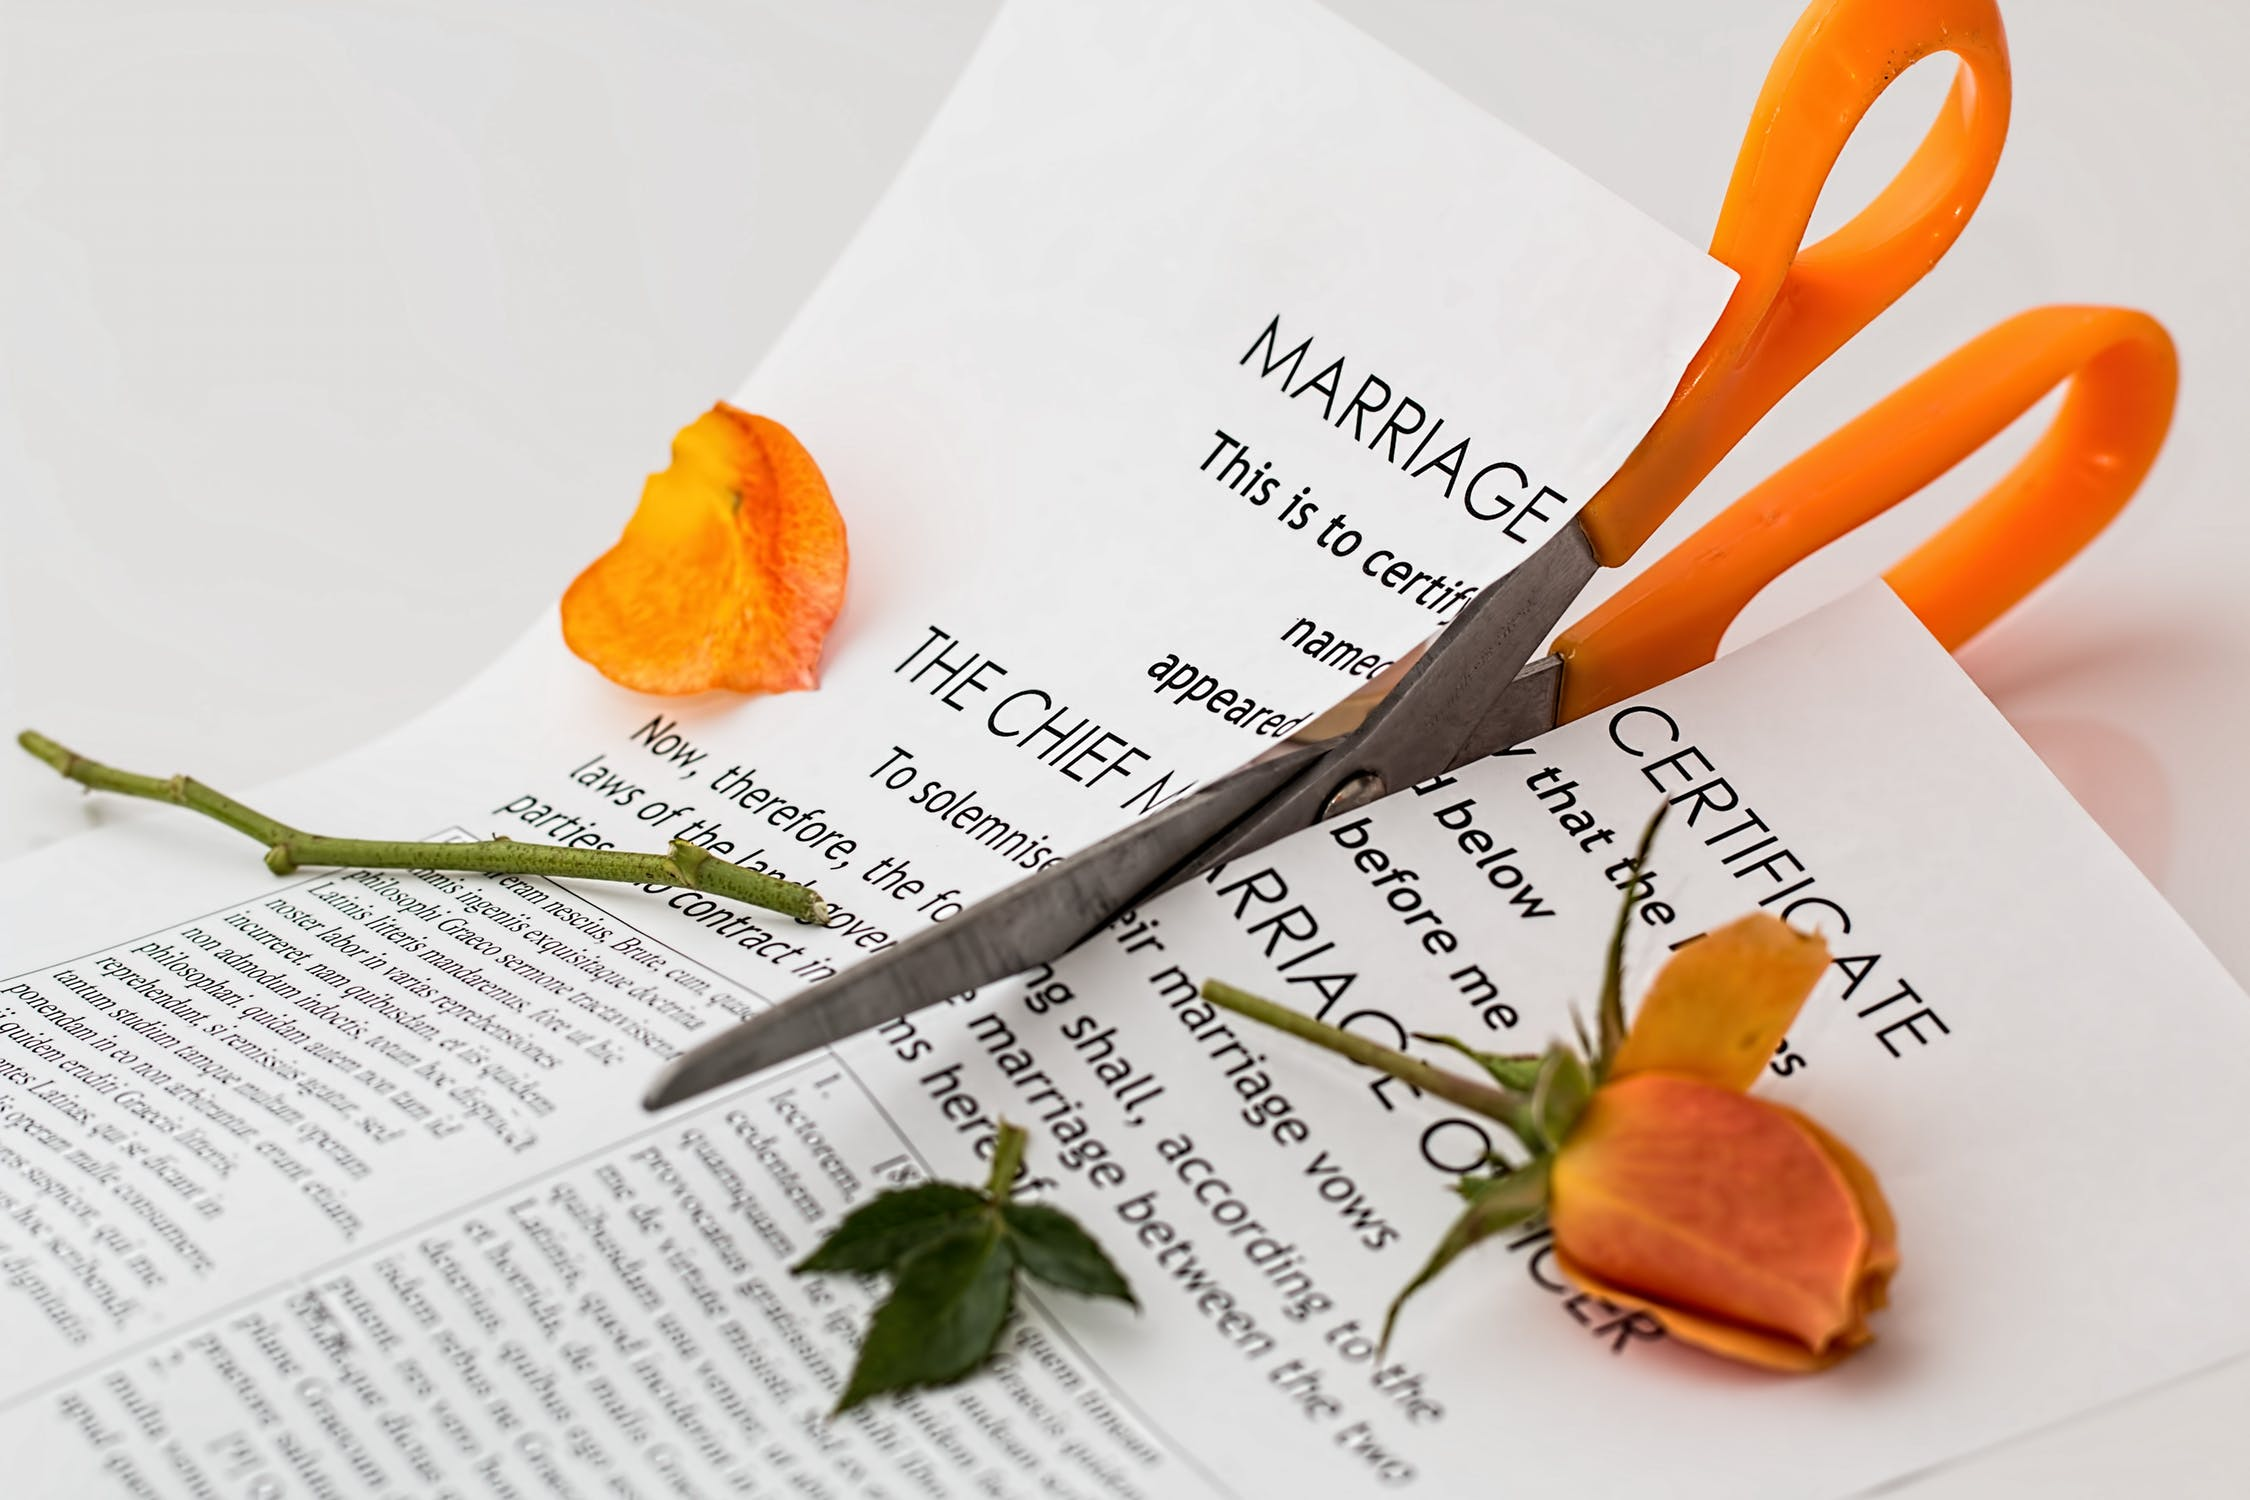 Divorce - Torn Up Marriage Certificate